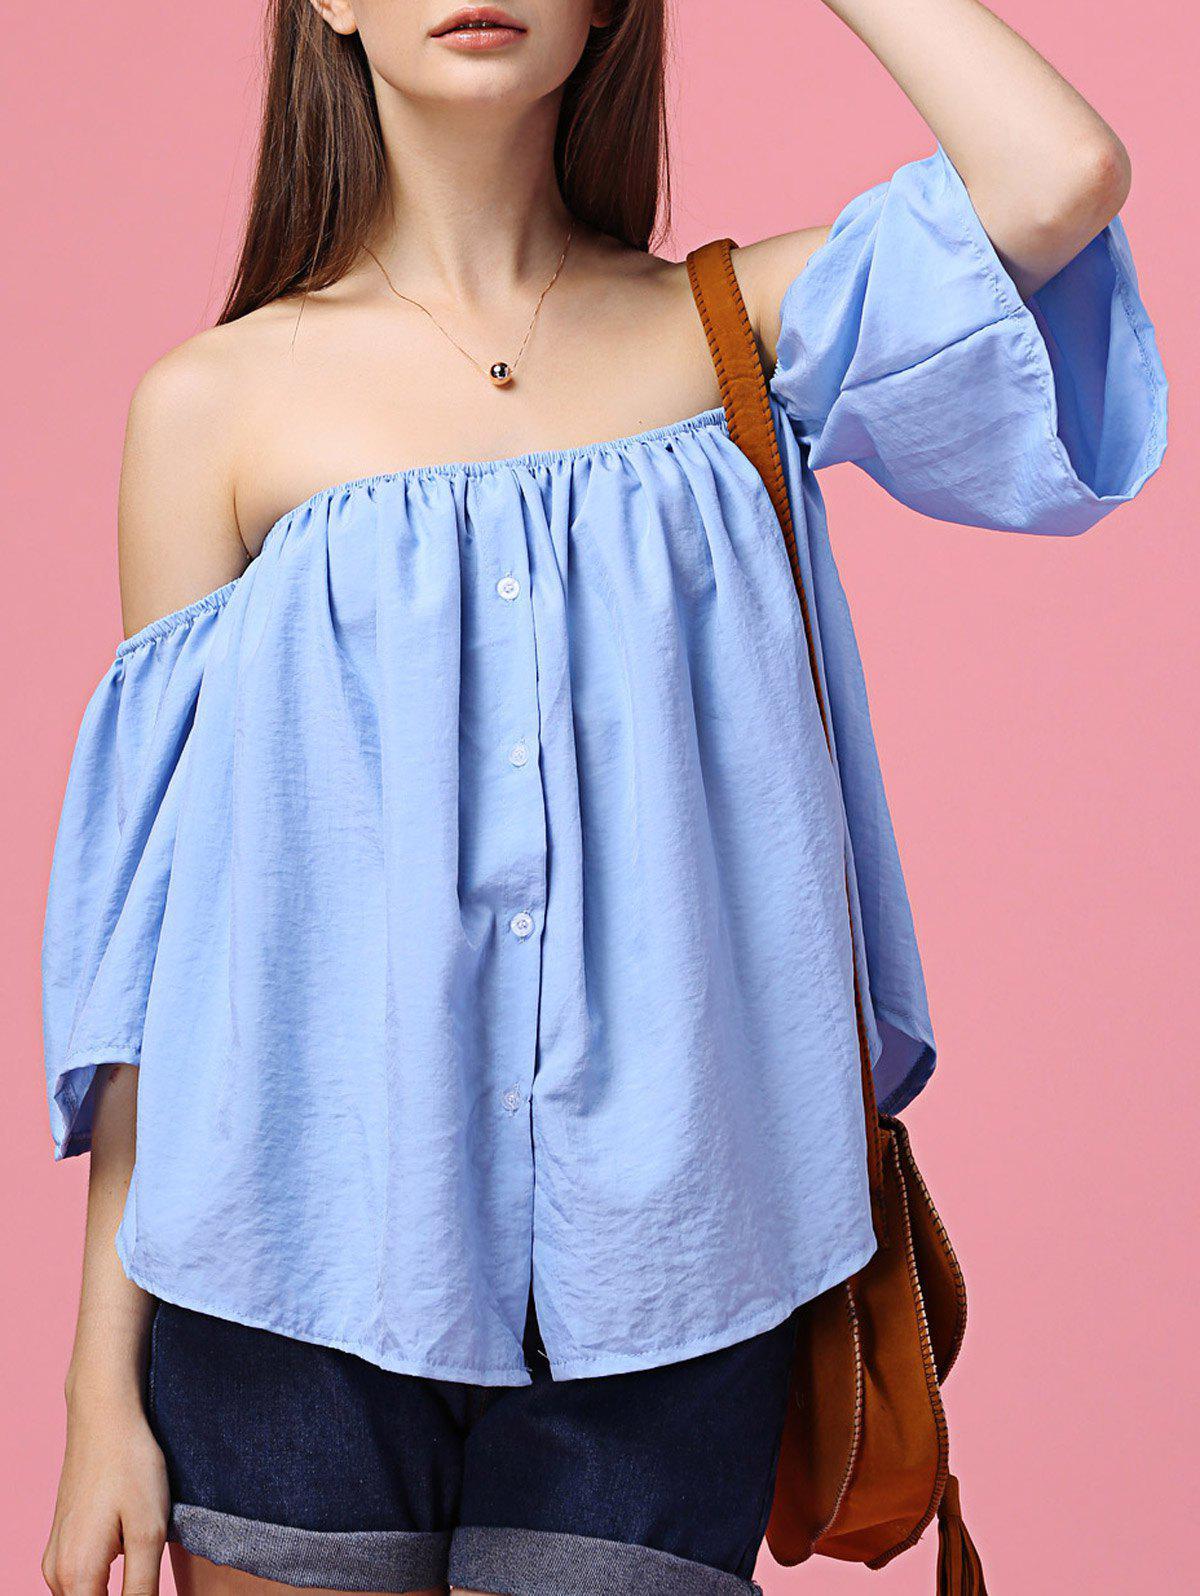 Sweet Off-The-Shoulder Flare Sleeves Blue Shirt For Women - LIGHT BLUE ONE SIZE(FIT SIZE XS TO M)